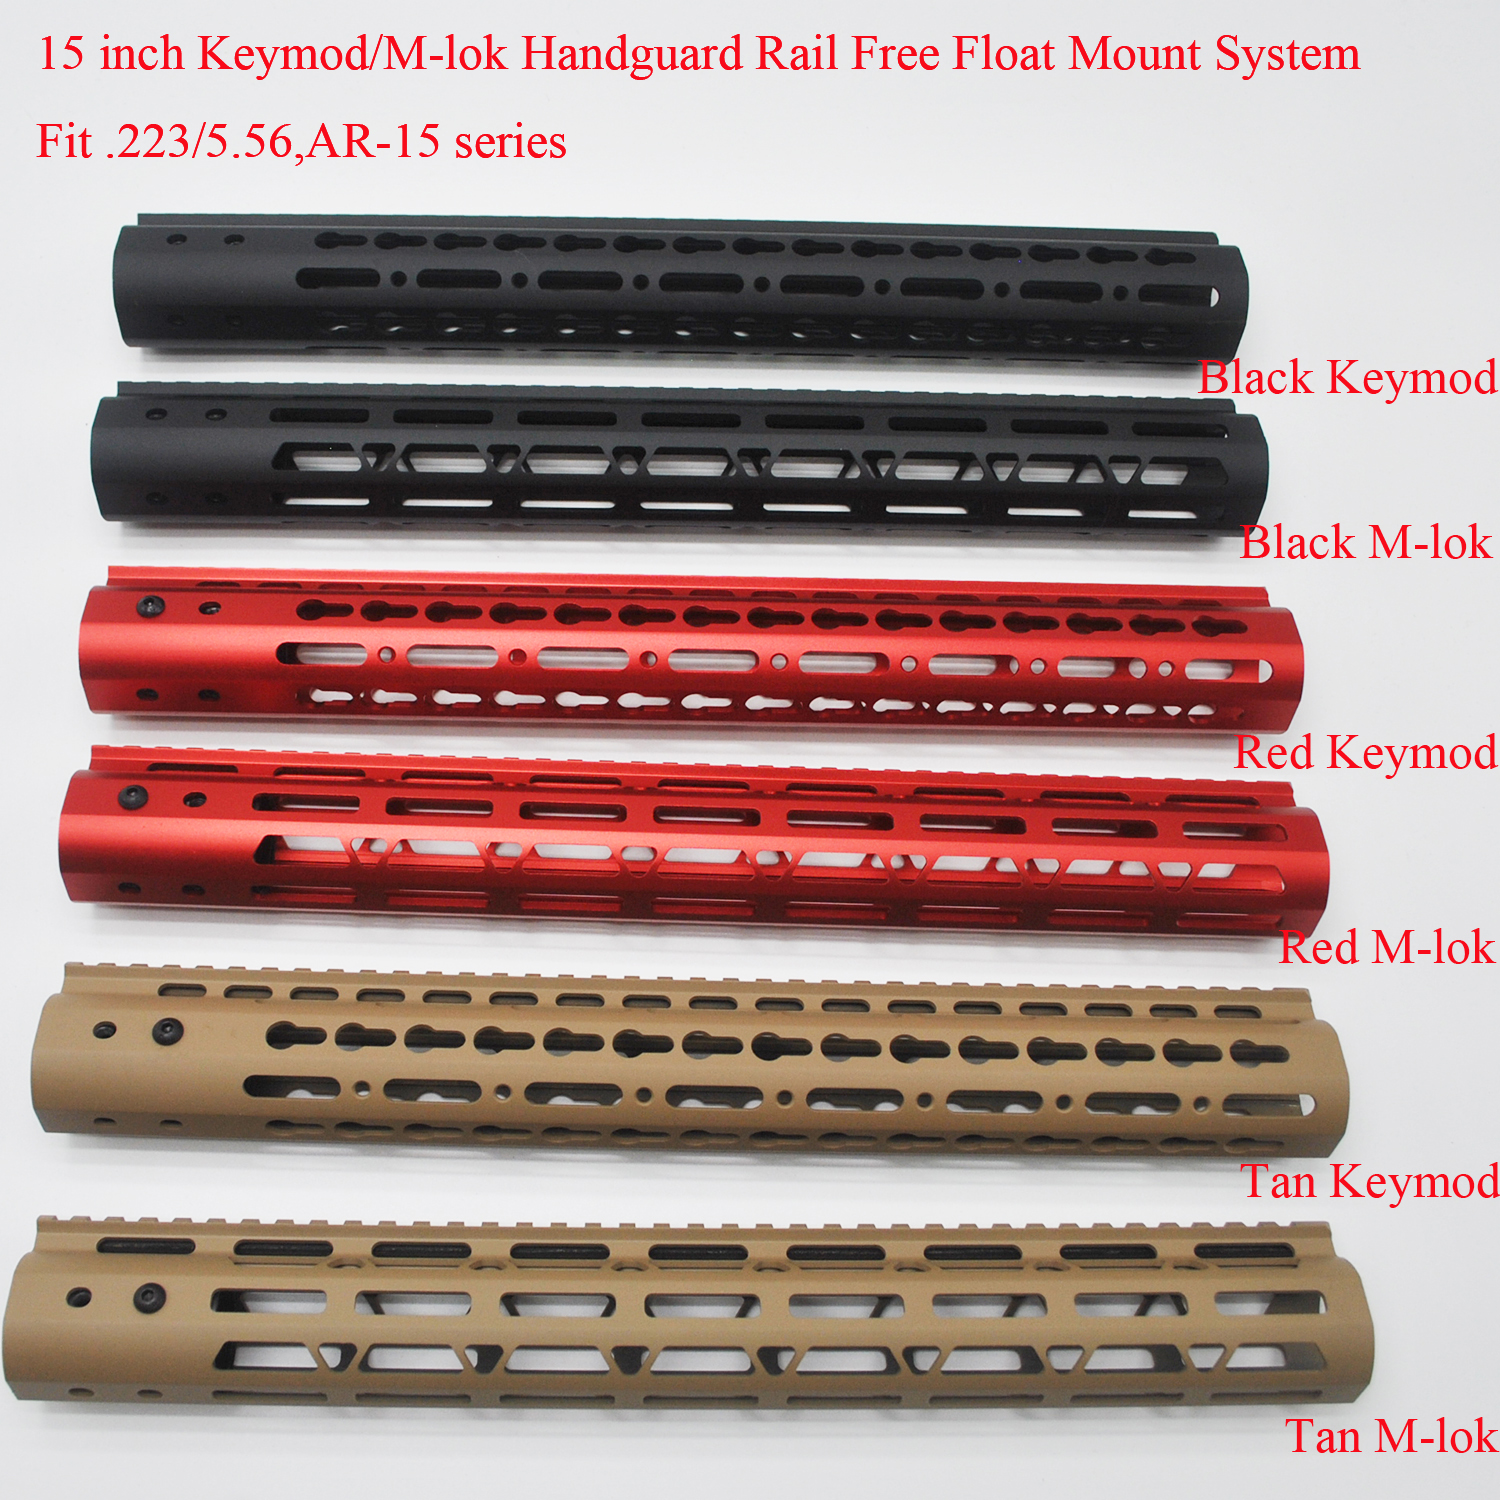 Aplus <font><b>15</b></font>'' inch Free Float <font><b>Handguard</b></font> Rail M-lok / Keymod Style Mount System Fit .223/5.56 <font><b>AR</b></font>-<font><b>15</b></font>_Black/Red/Tan Color image